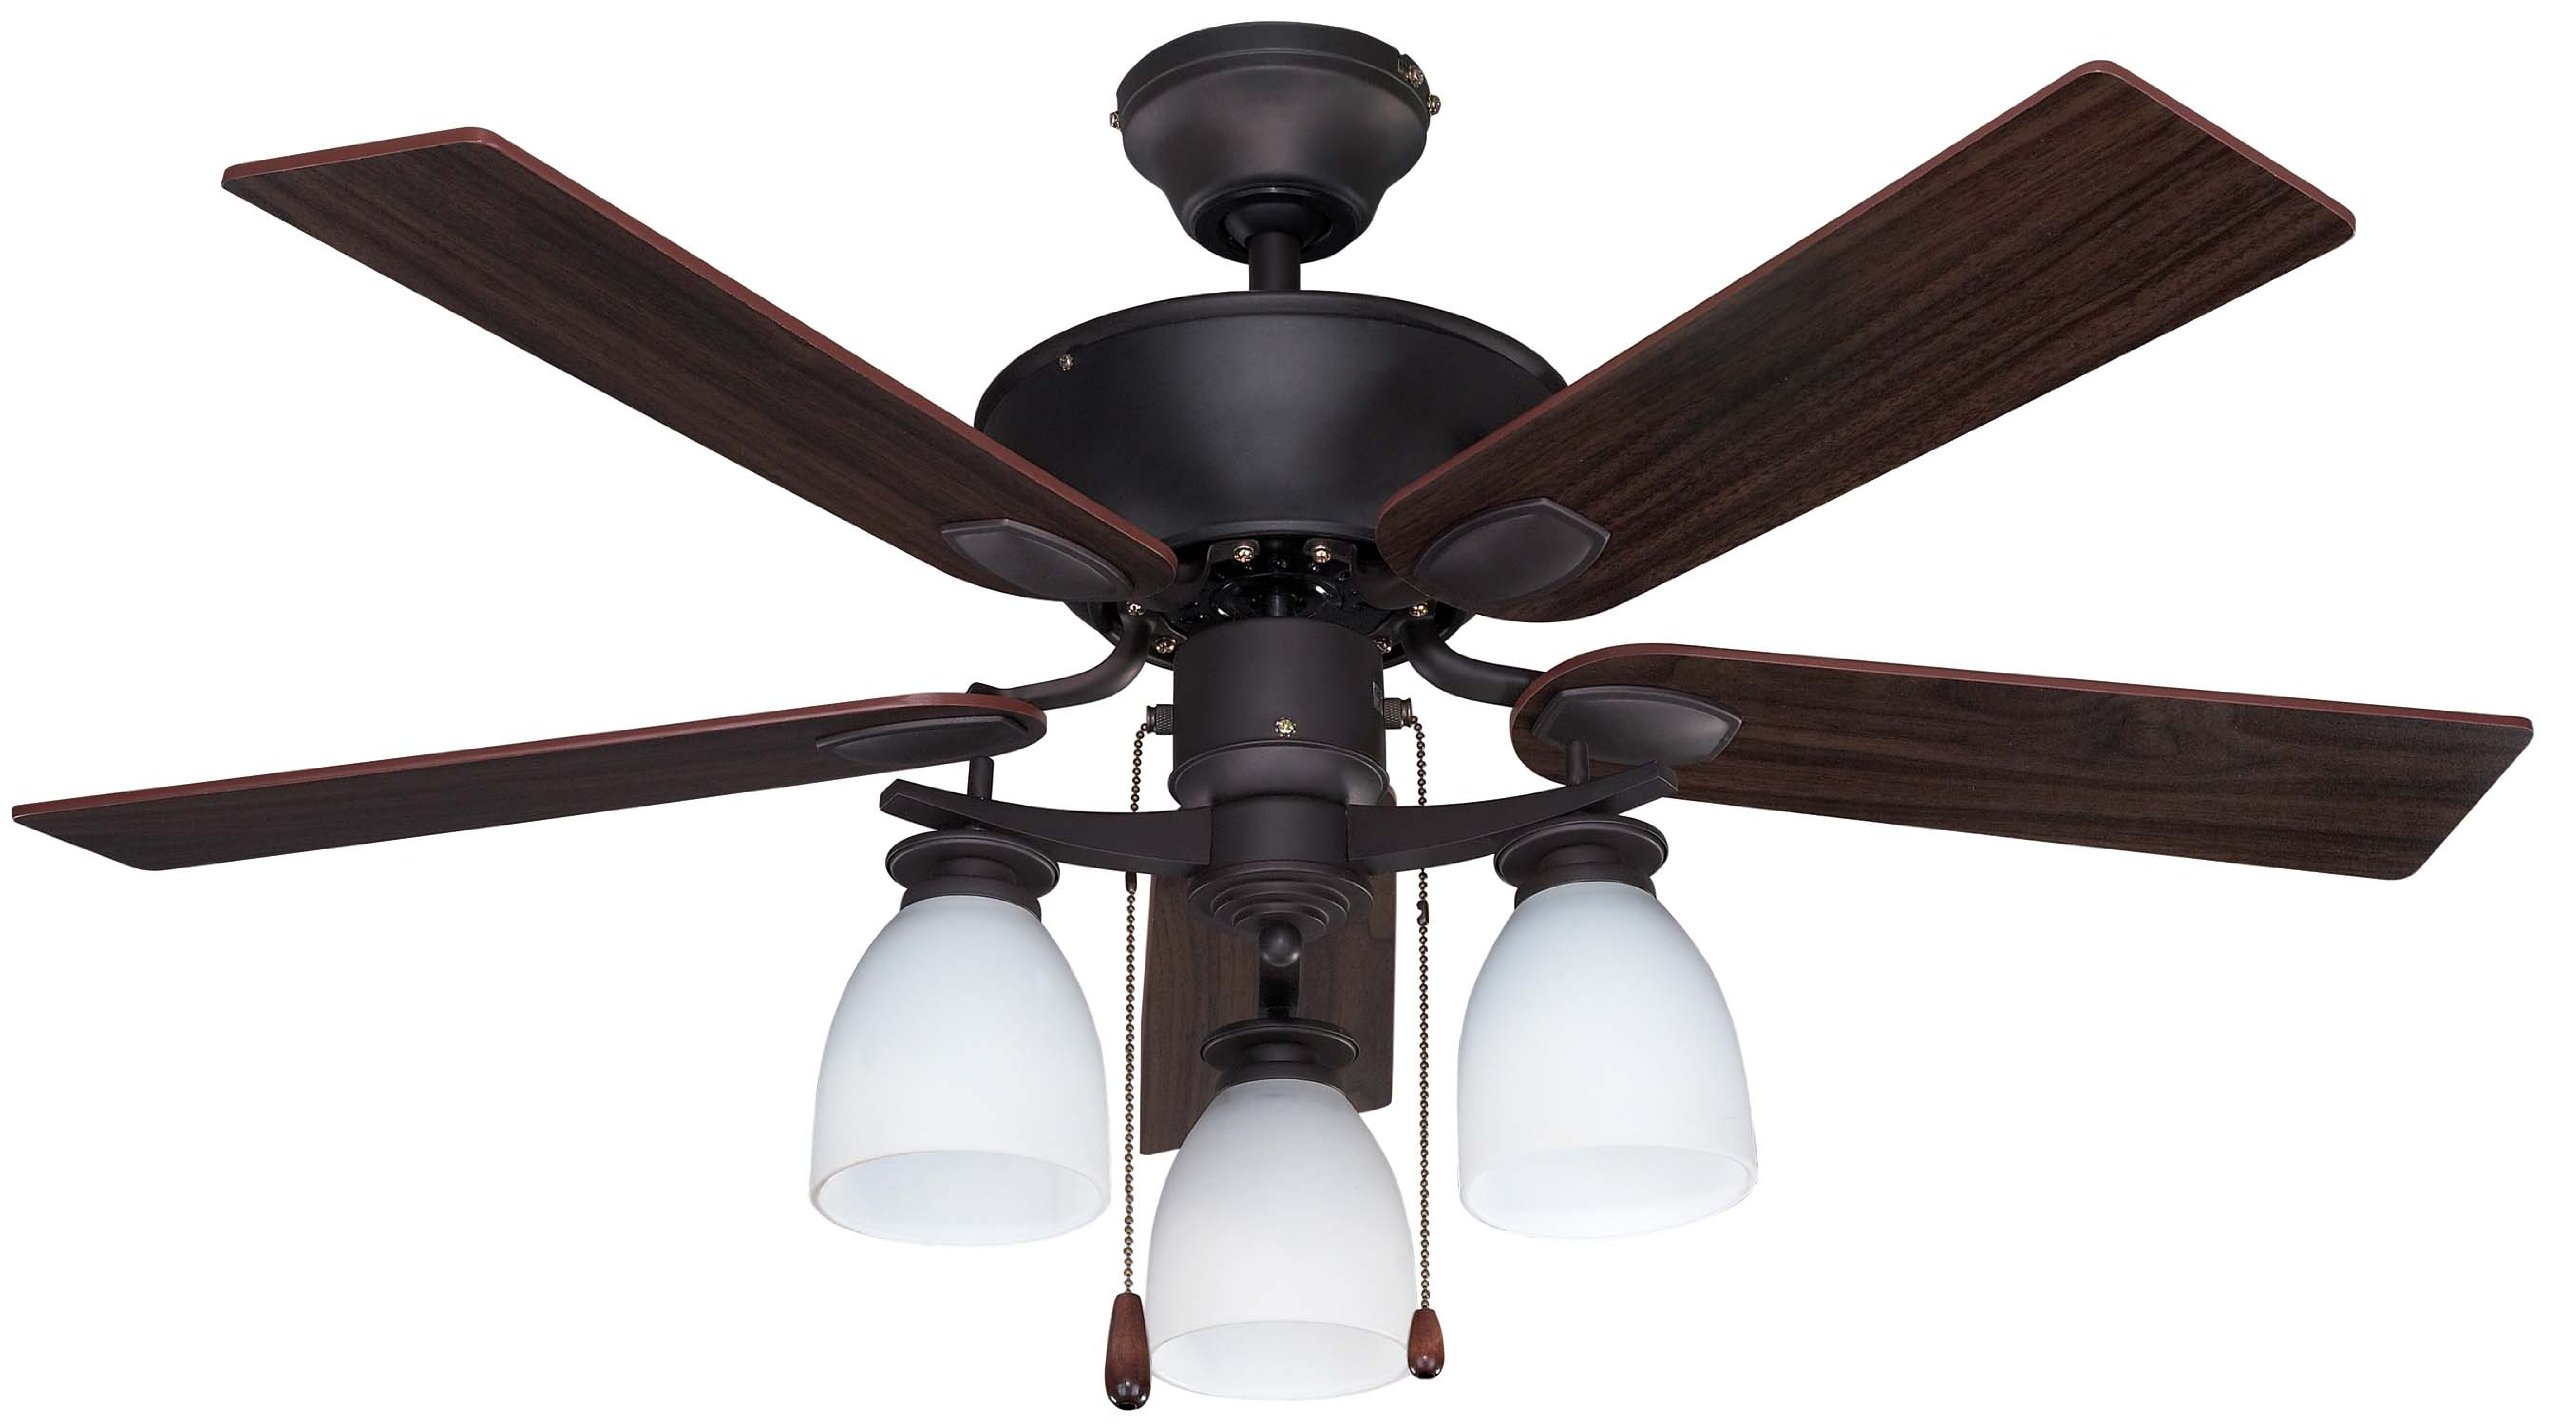 Canarm CF42NEW5ORB New Yorker Dual Mount 42-Inch Ceiling Fan with Flat Opal Light Kit and 5 Reversible Blades, Oil Rubbed Bronze by Canarm